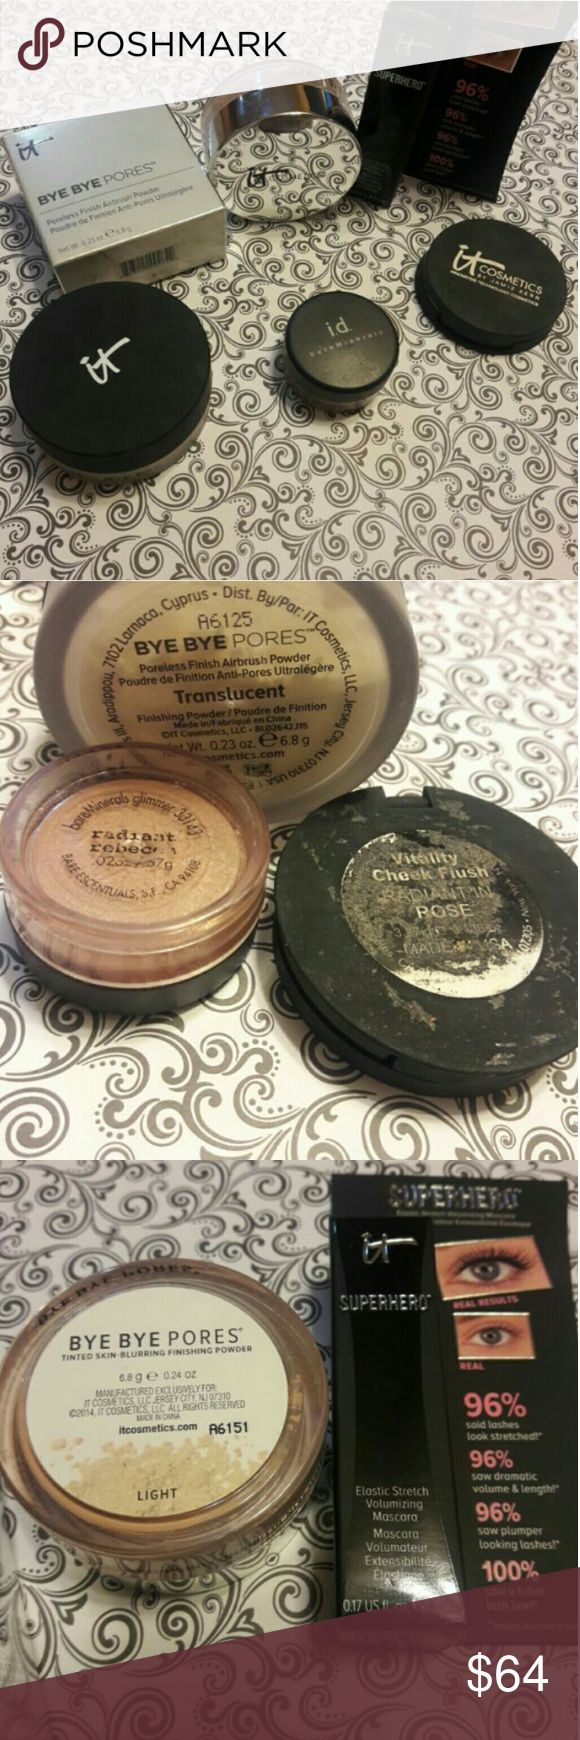 IT Cosmetics products Bye Bye Pores finishing powder